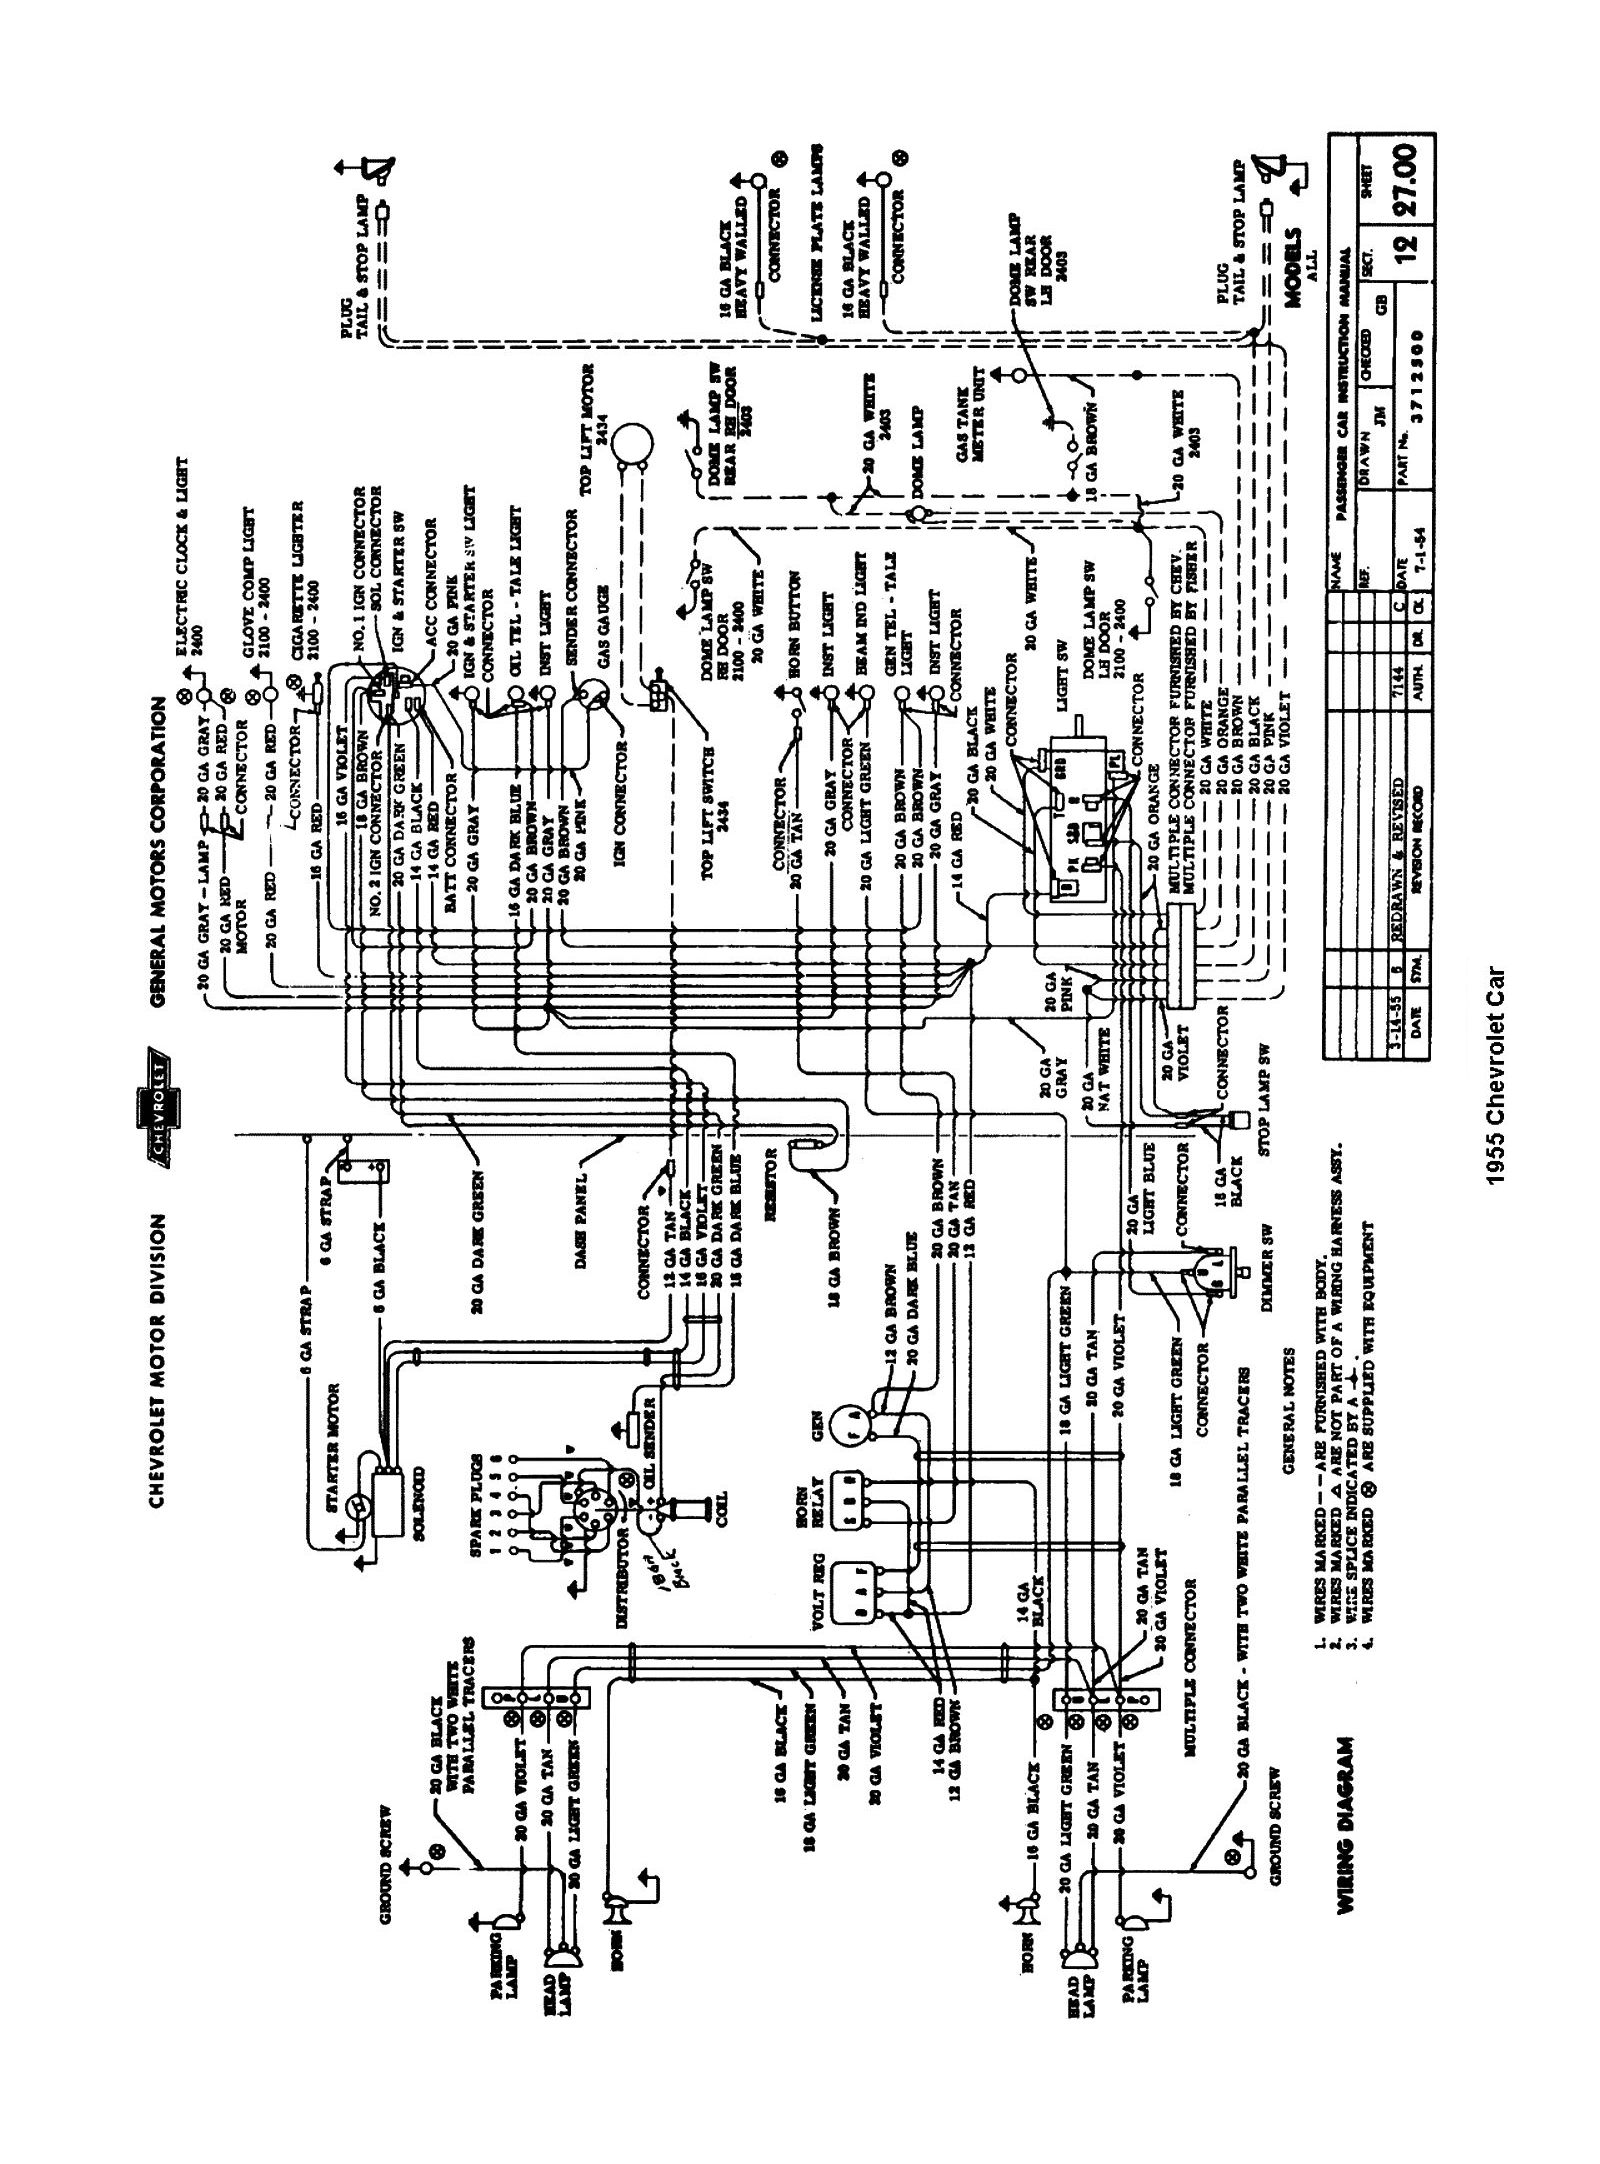 1959 Chevrolet Bel Air Wiring Diagram Just Another Chevy Diagrams Rh Oldcarmanualproject Com 1955 Impala